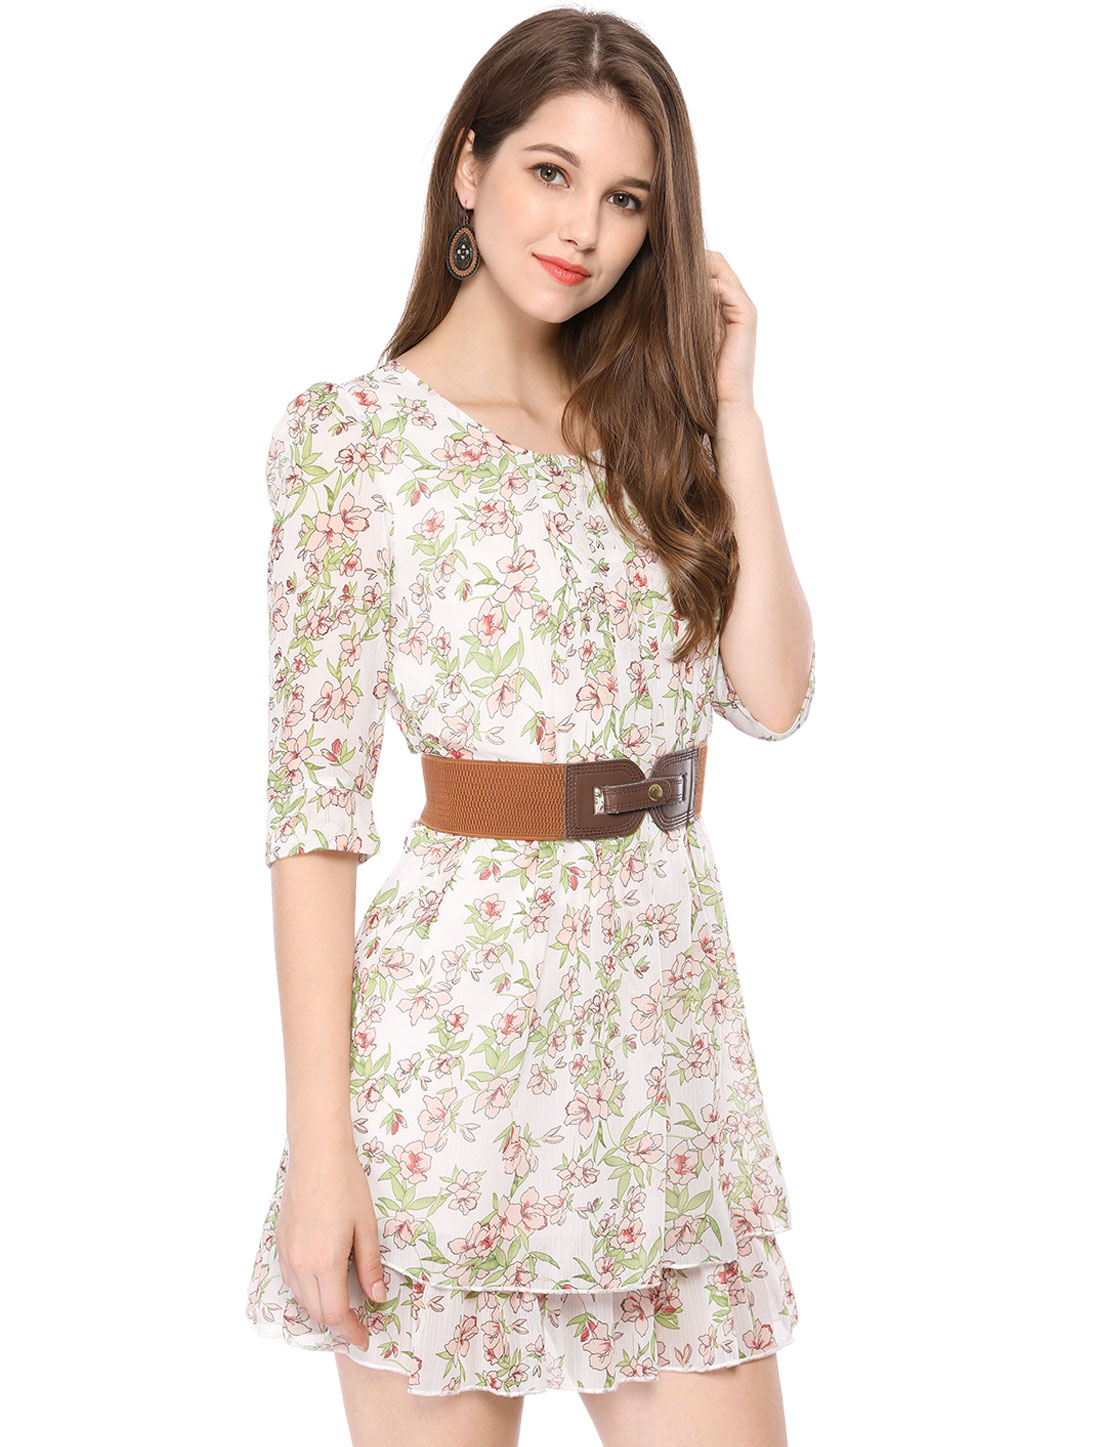 Woman Floral Prints Chiffon Green Red Above Knee Dress XS w a Waist Belt